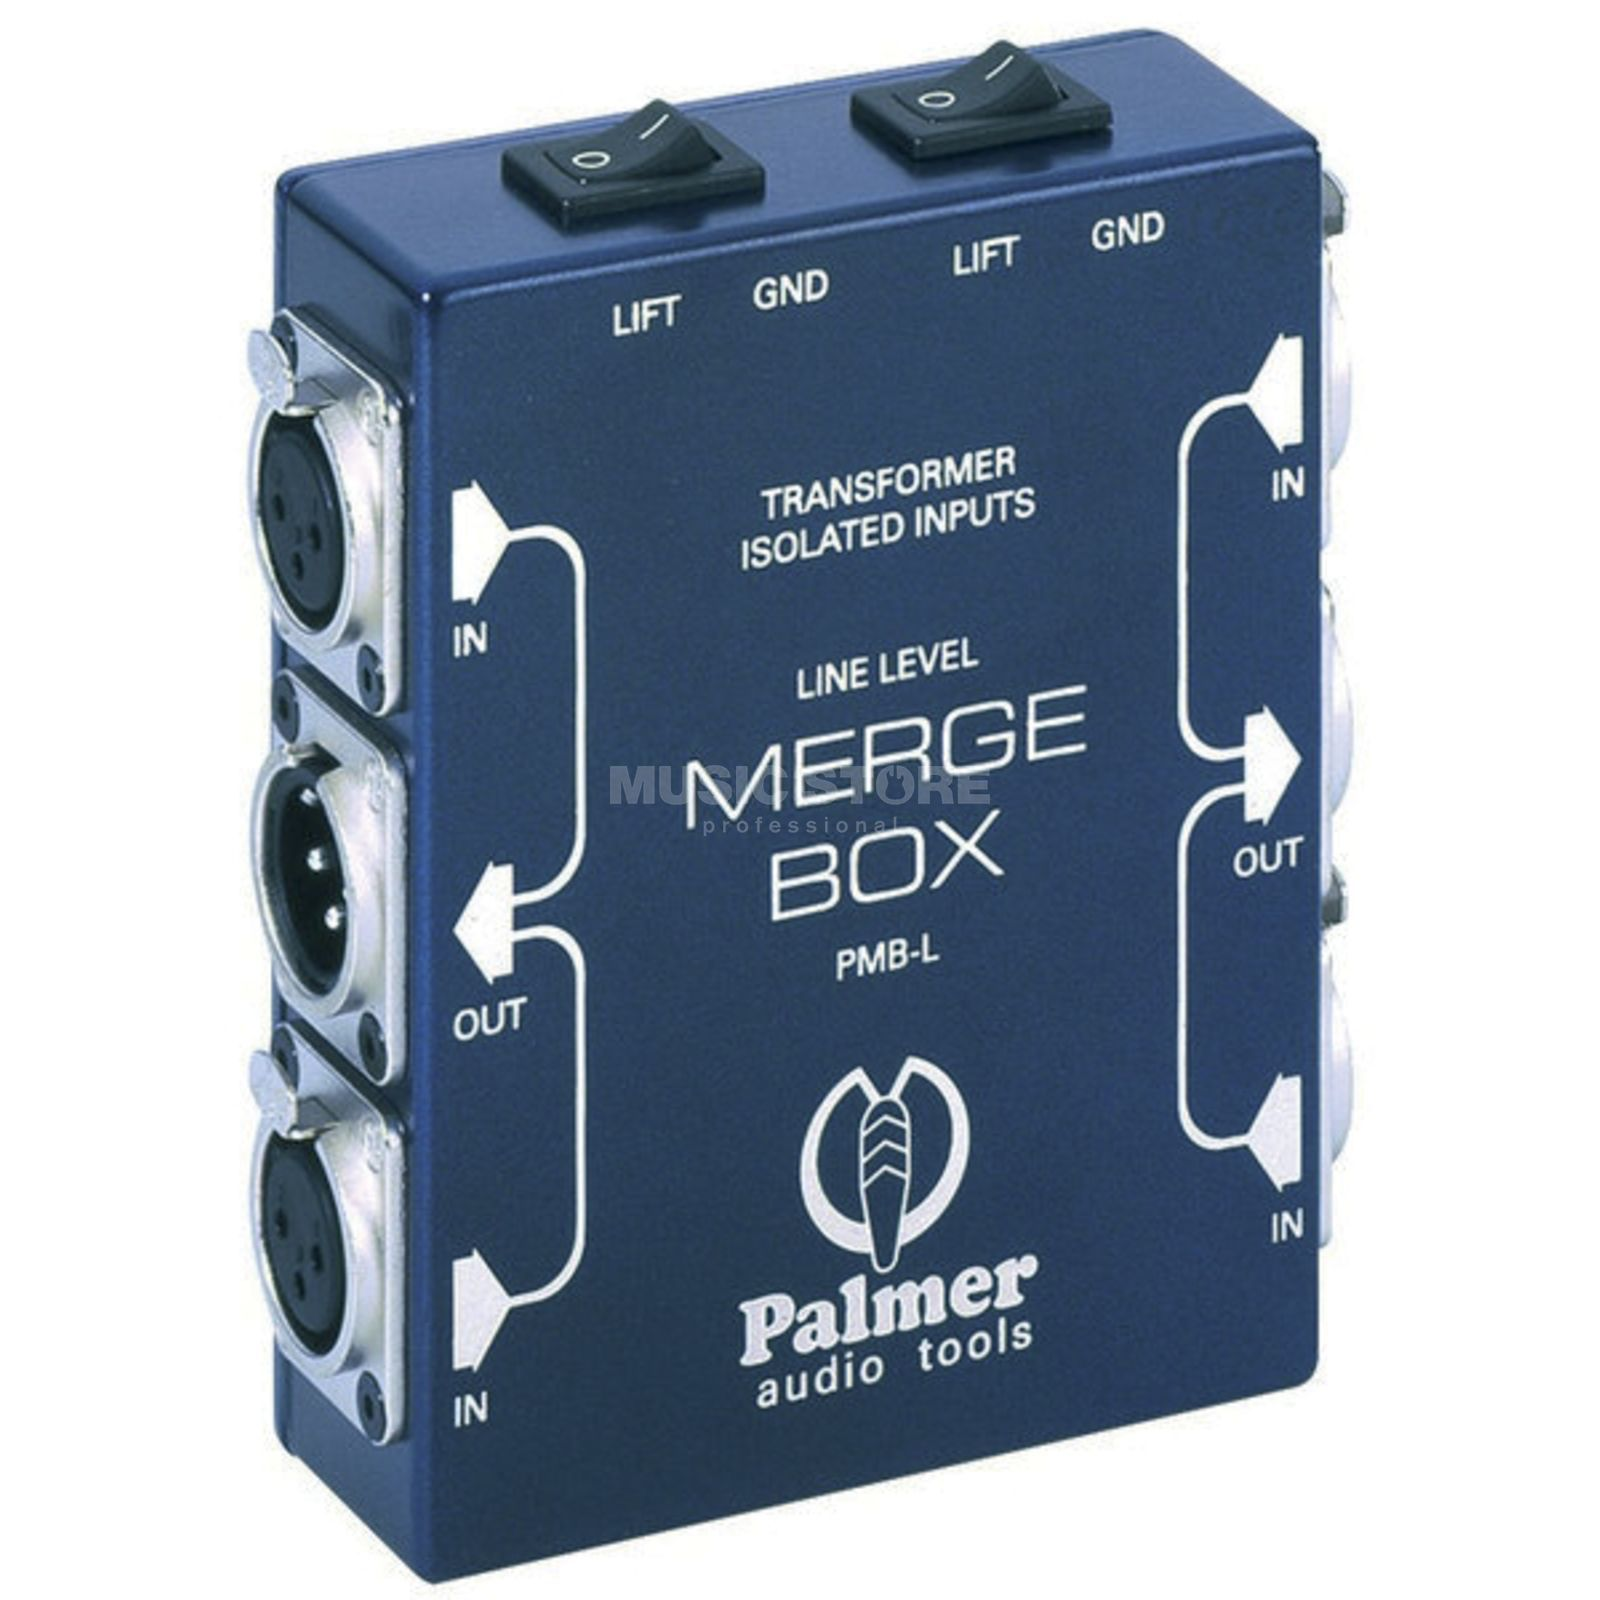 Palmer PMB-L Line Level   PMB-L Line Level Mergebox Produktbillede